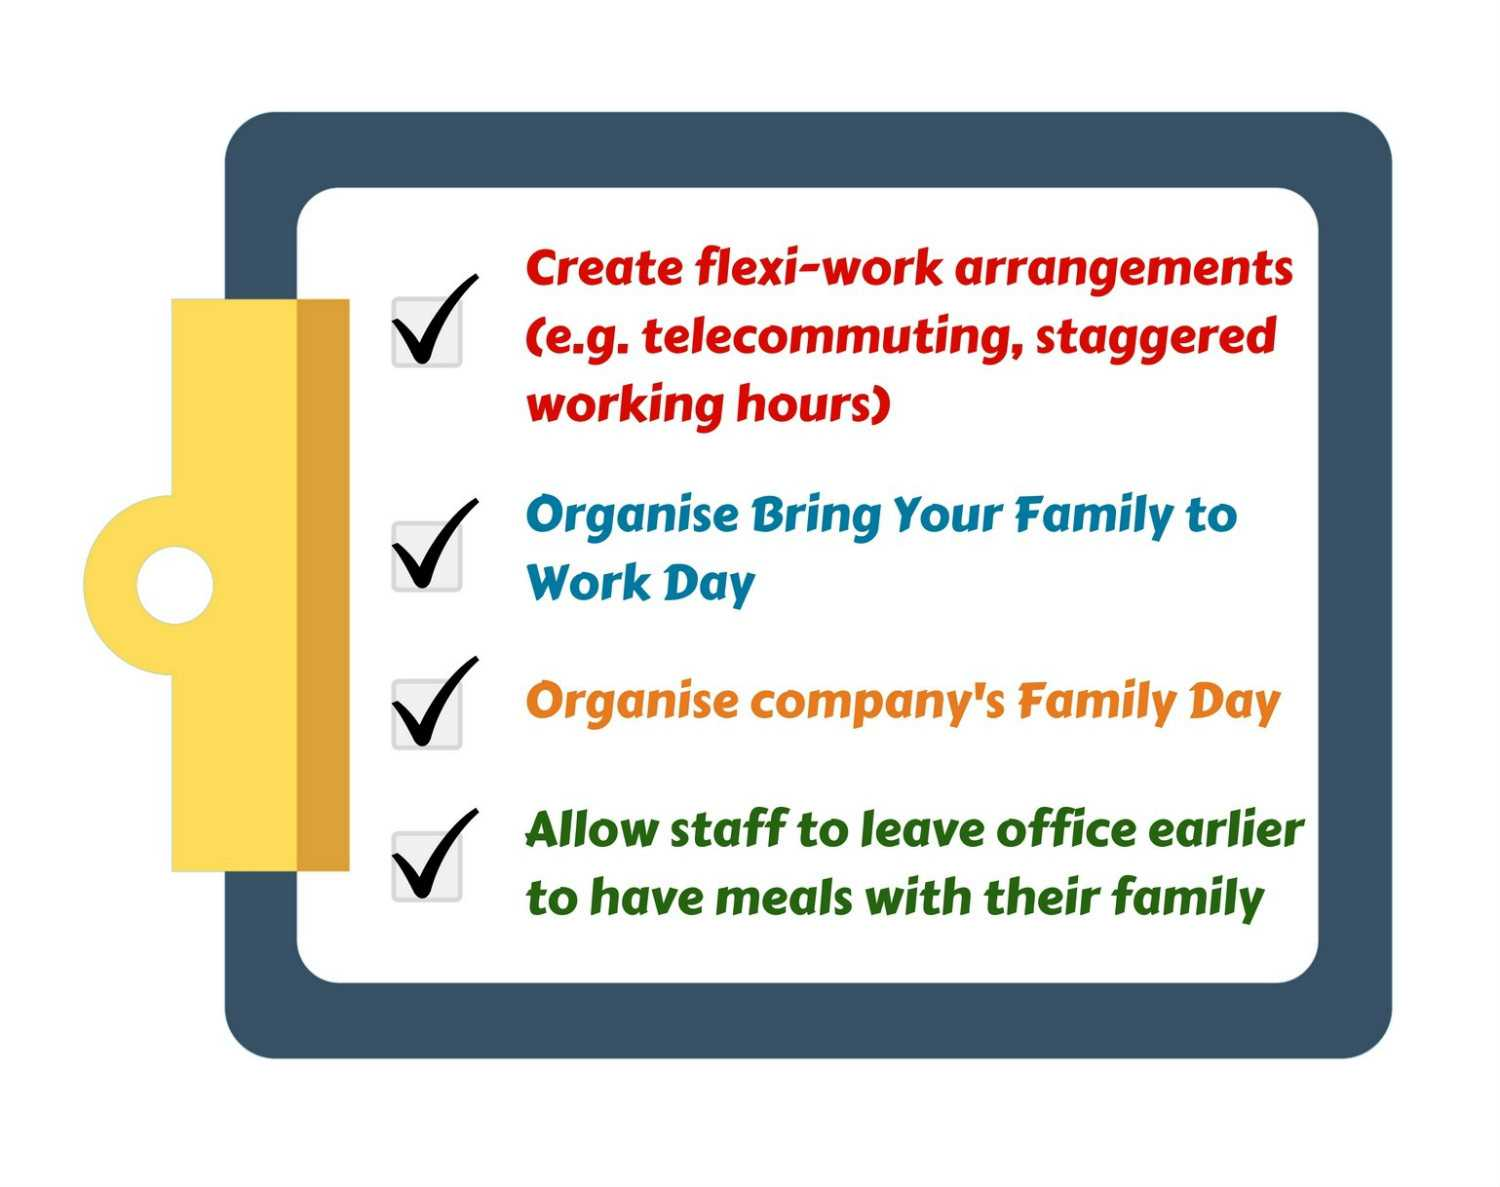 Familiy-friendly options for employer support